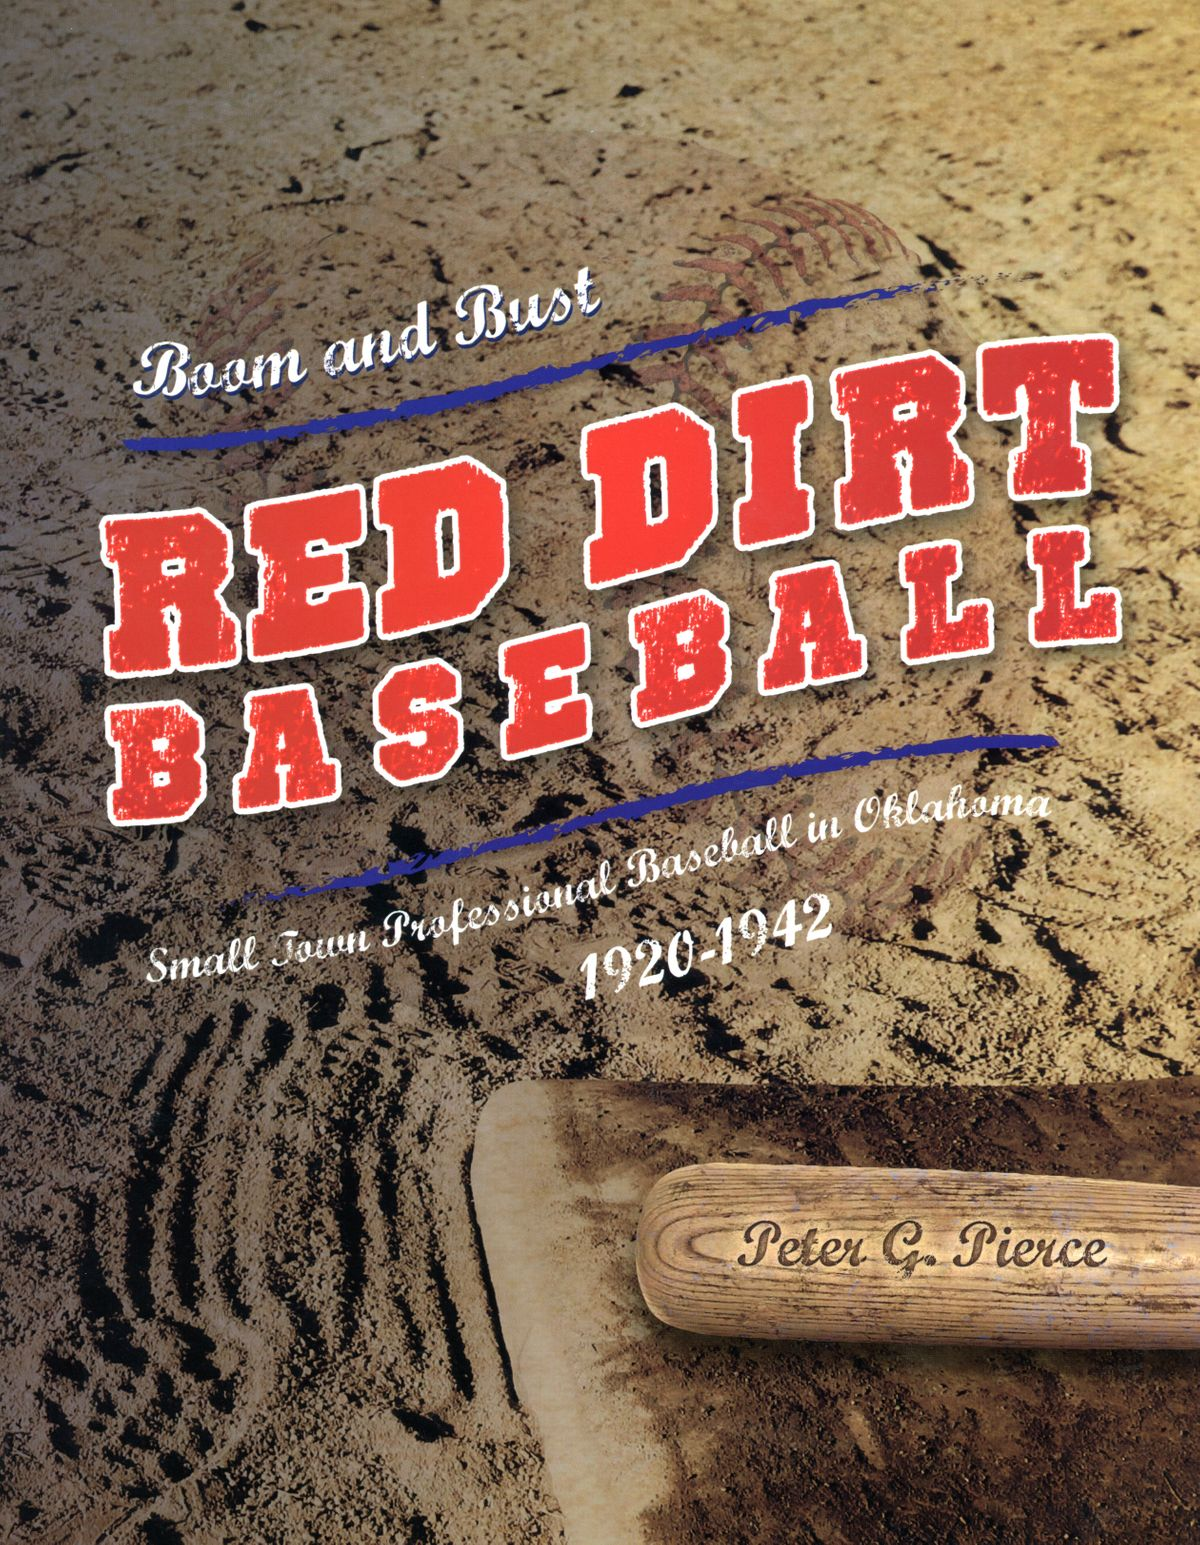 RED DIRT BASEBALL - BOOM AND BUST.jpg